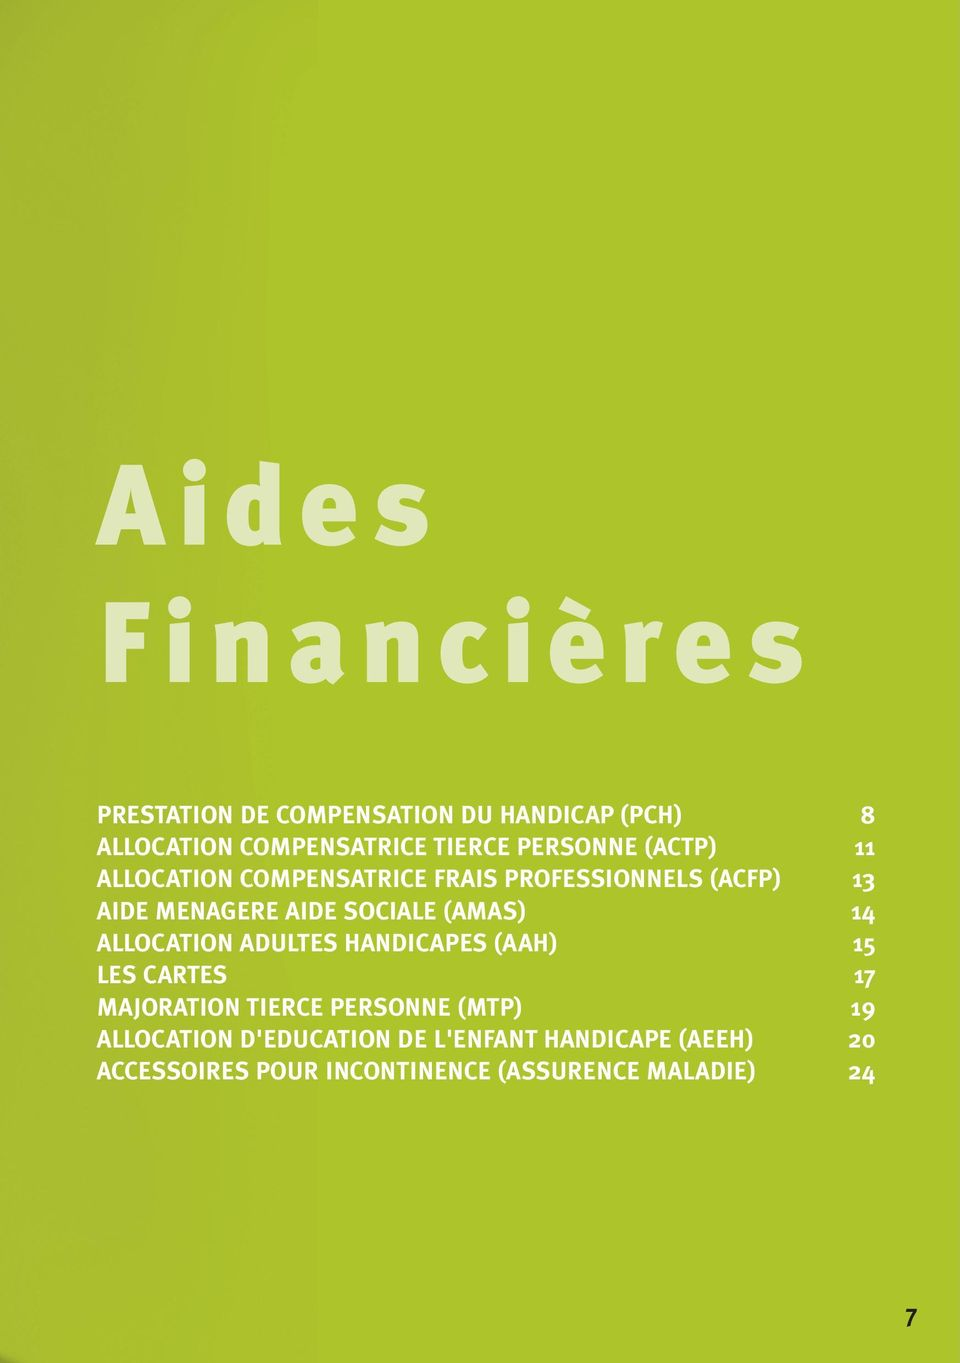 (AMAS) 14 ALLOCATION ADULTES HANDICAPES (AAH) 15 LES CARTES 17 MAJORATION TIERCE PERSONNE (MTP) 19